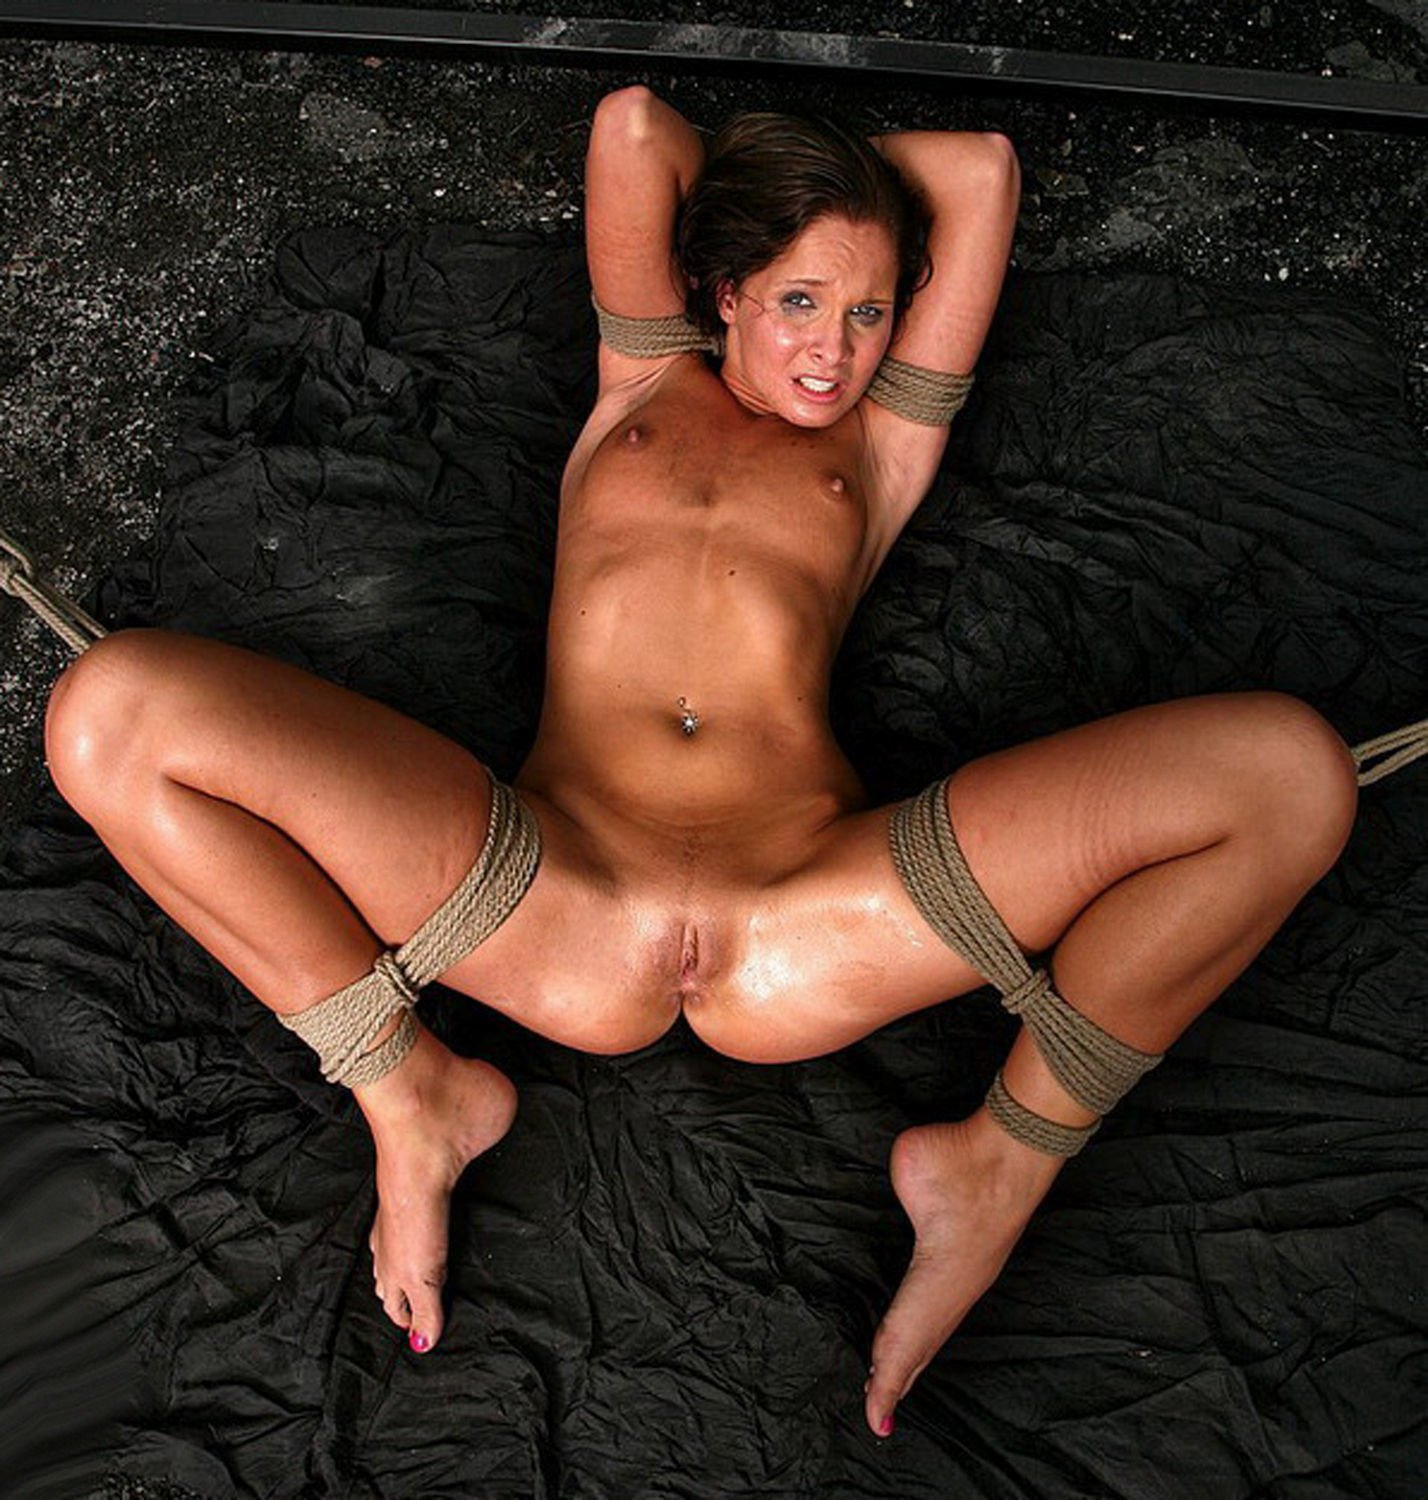 Anally Drilled With Hands Tied Behind Her Back